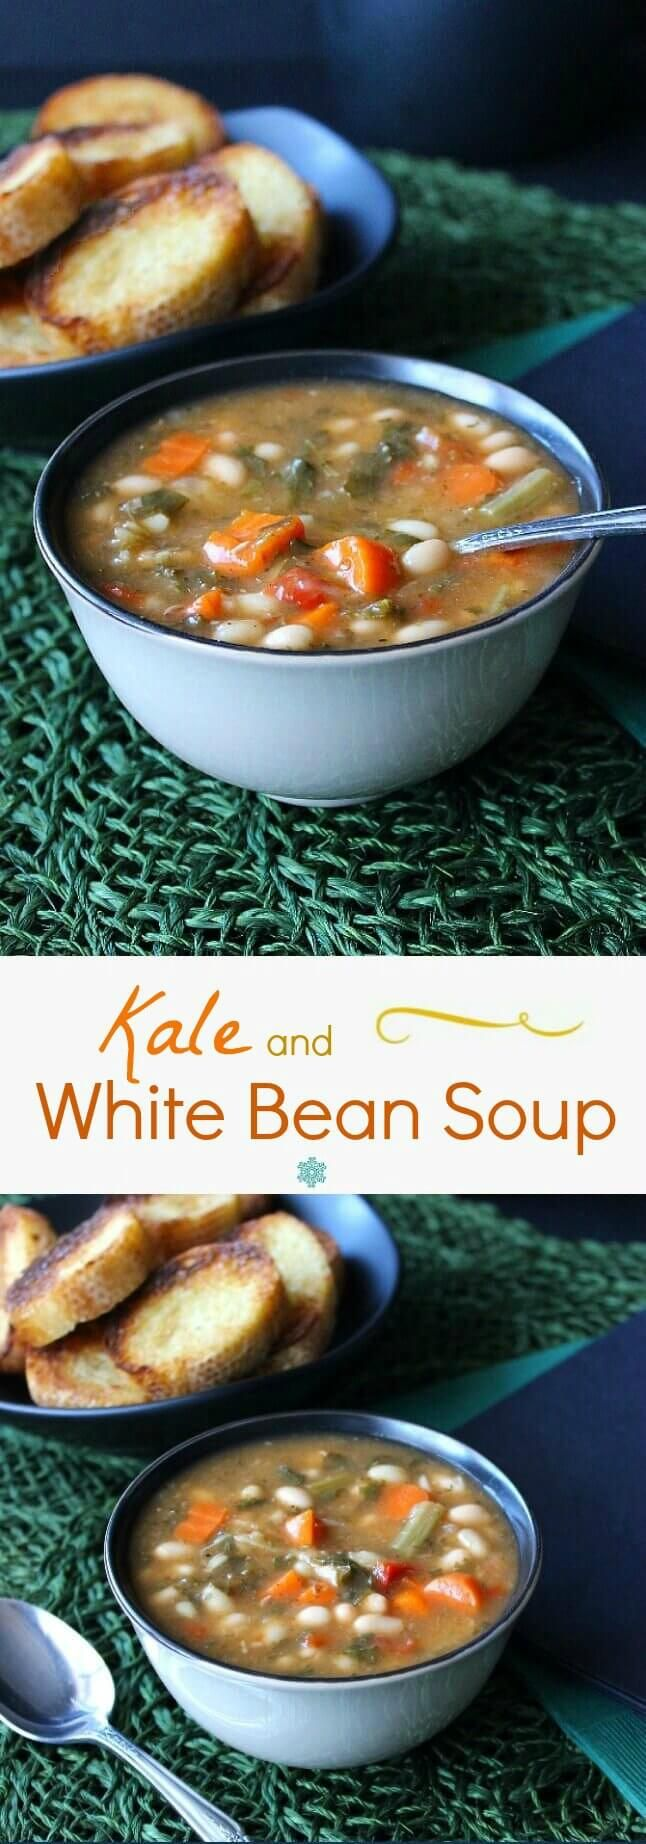 Kale White Bean Soup serves up a complete meal with this one recipe. An easy and delicious recipe that you need to make asap. Great on any night of the week.